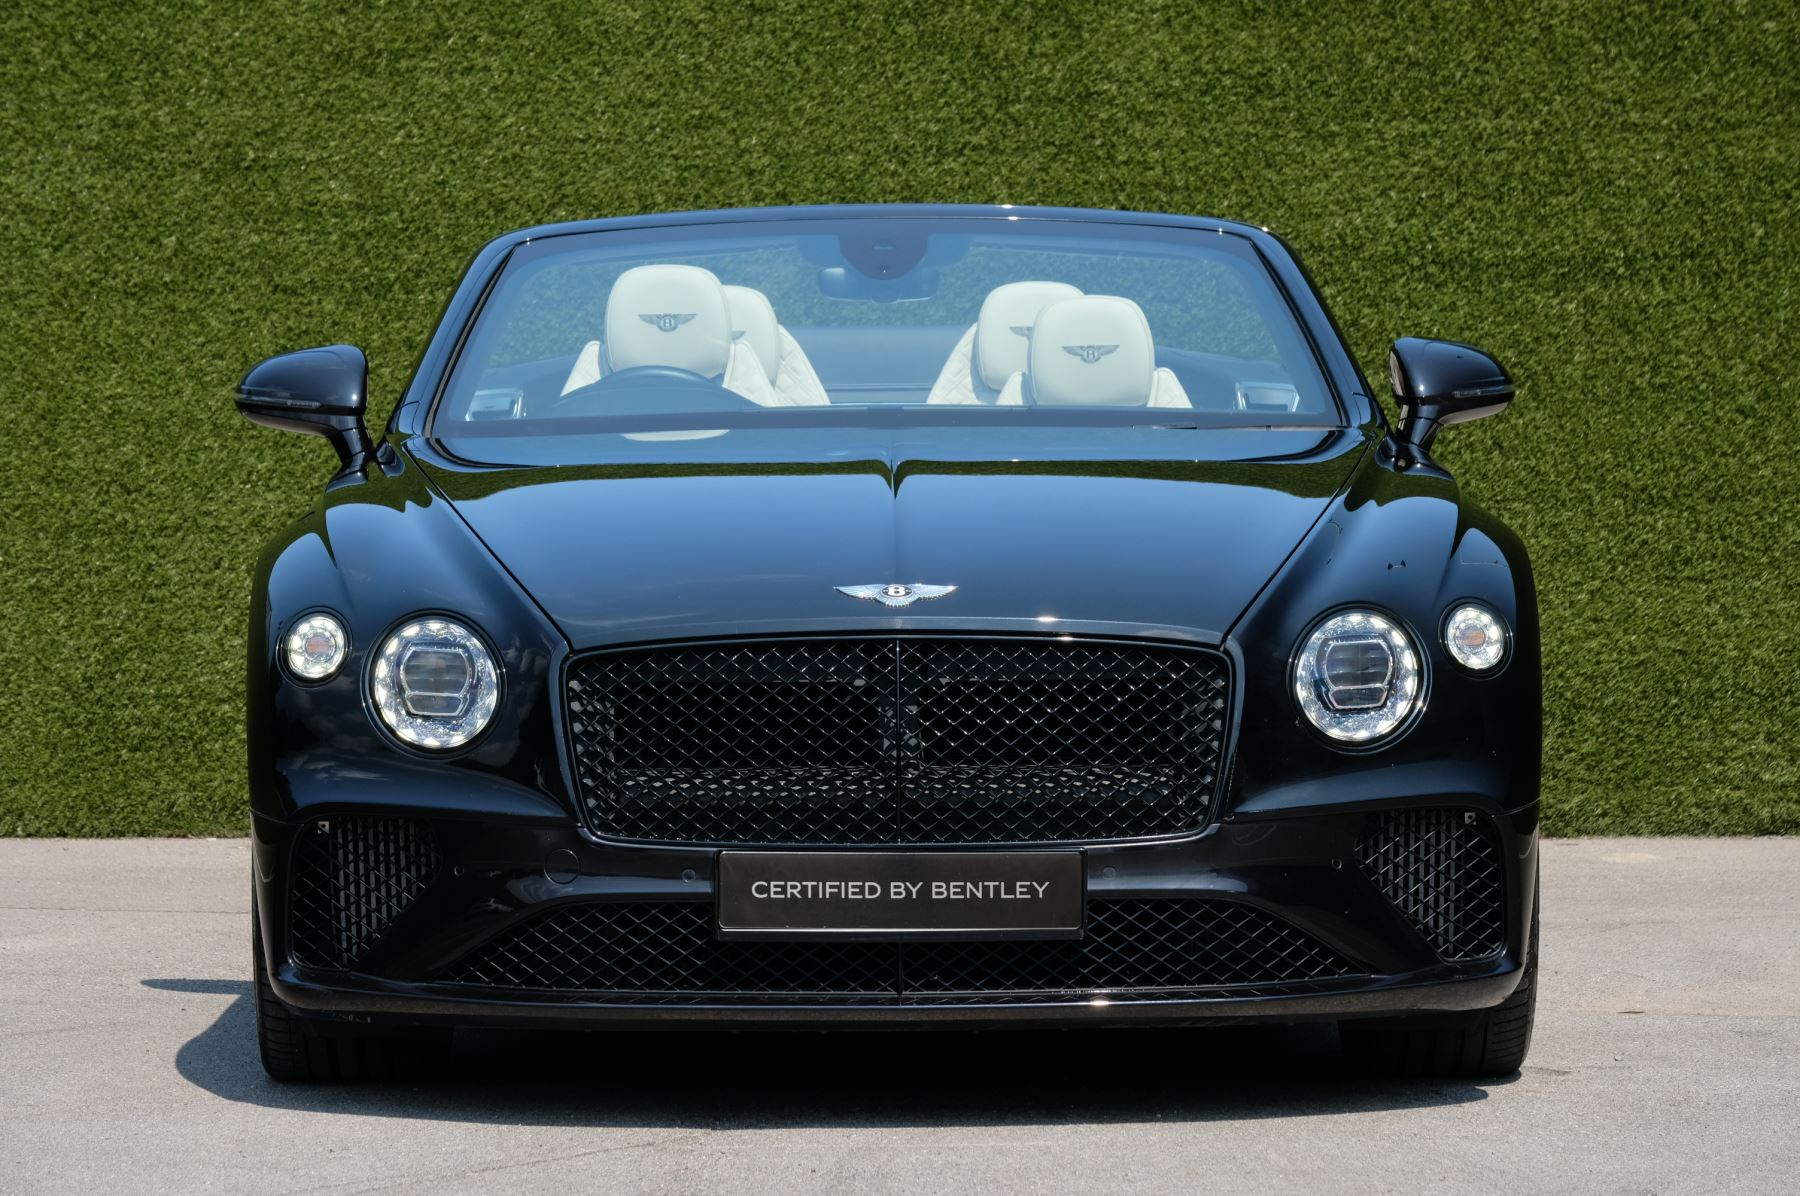 Bentley Continental GTC 6.0 W12 - Mulliner Driving Specification and Centenary Specification image 2